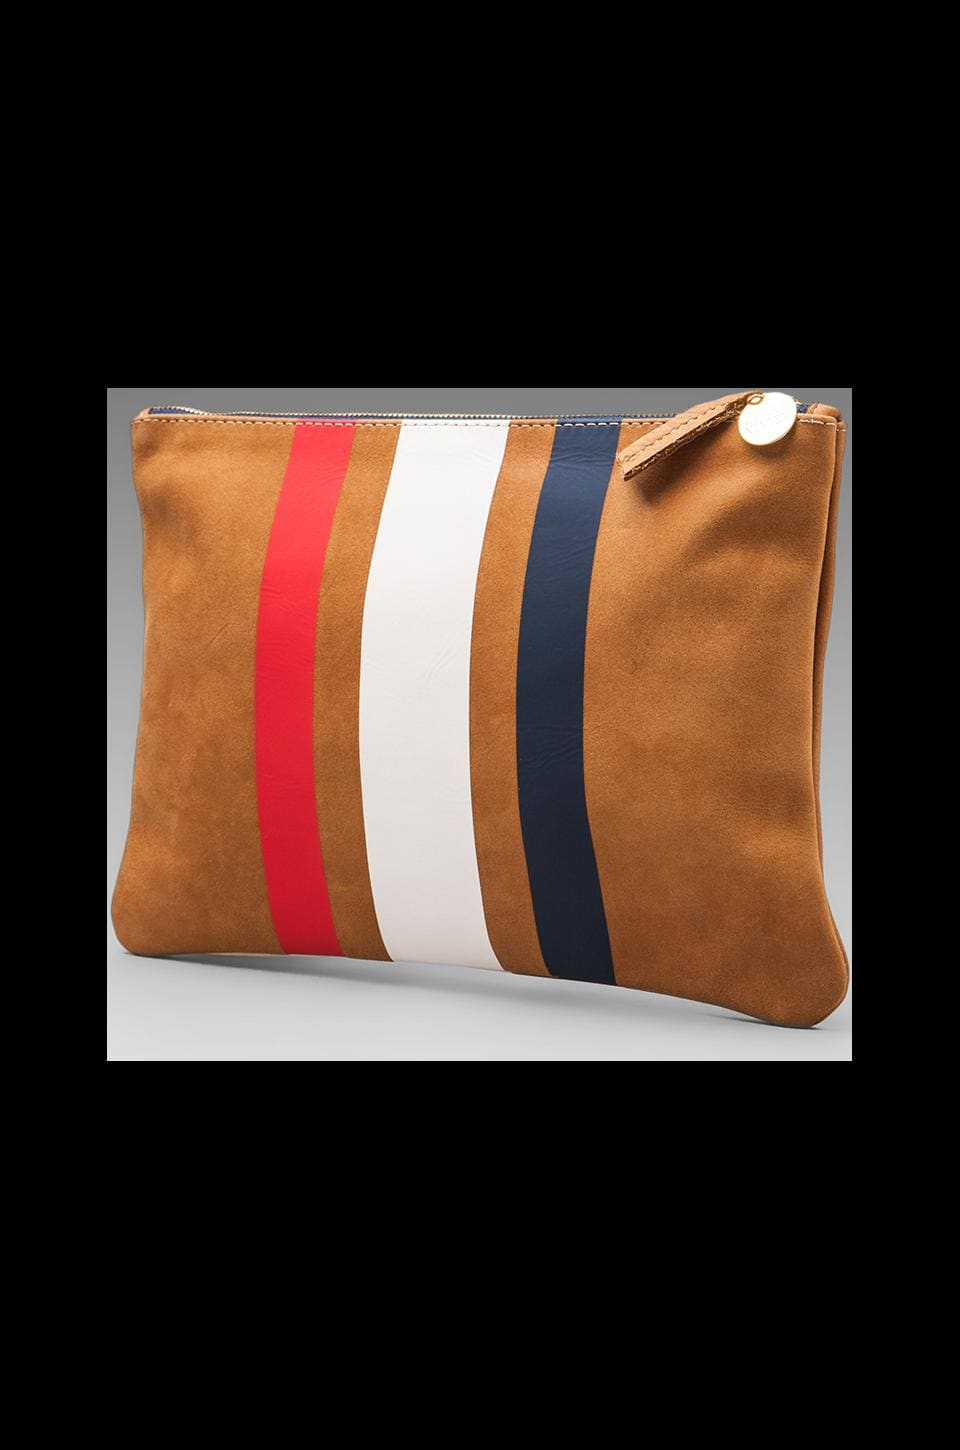 Clare V. 3 Stripe Flat Clutch in Red/White/Blue